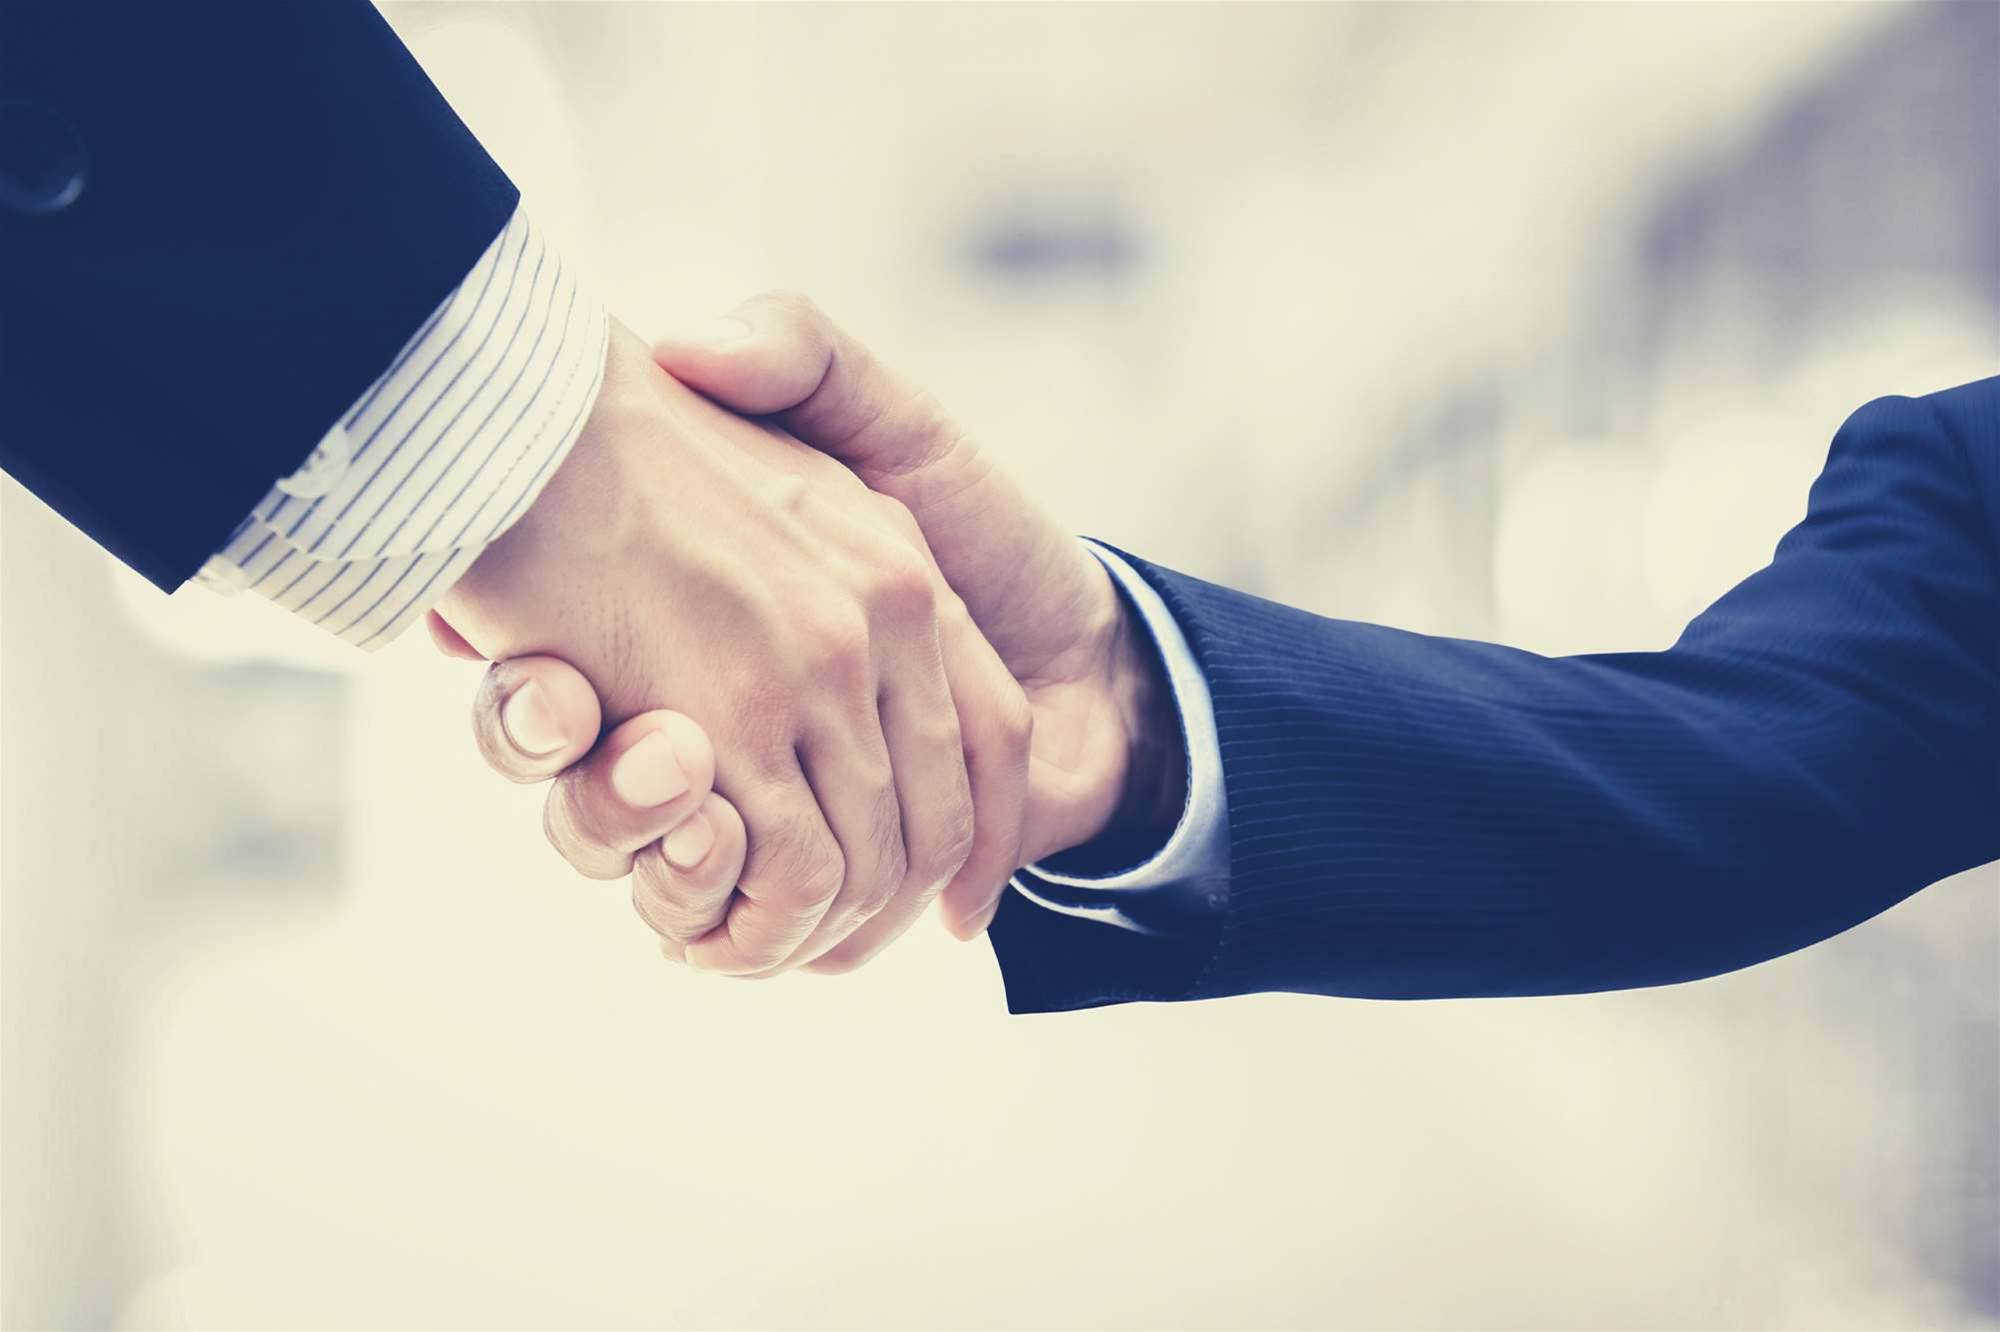 Thomas Duryea Logicalis hires Sandra Tuohy as national sales boss out of Optus